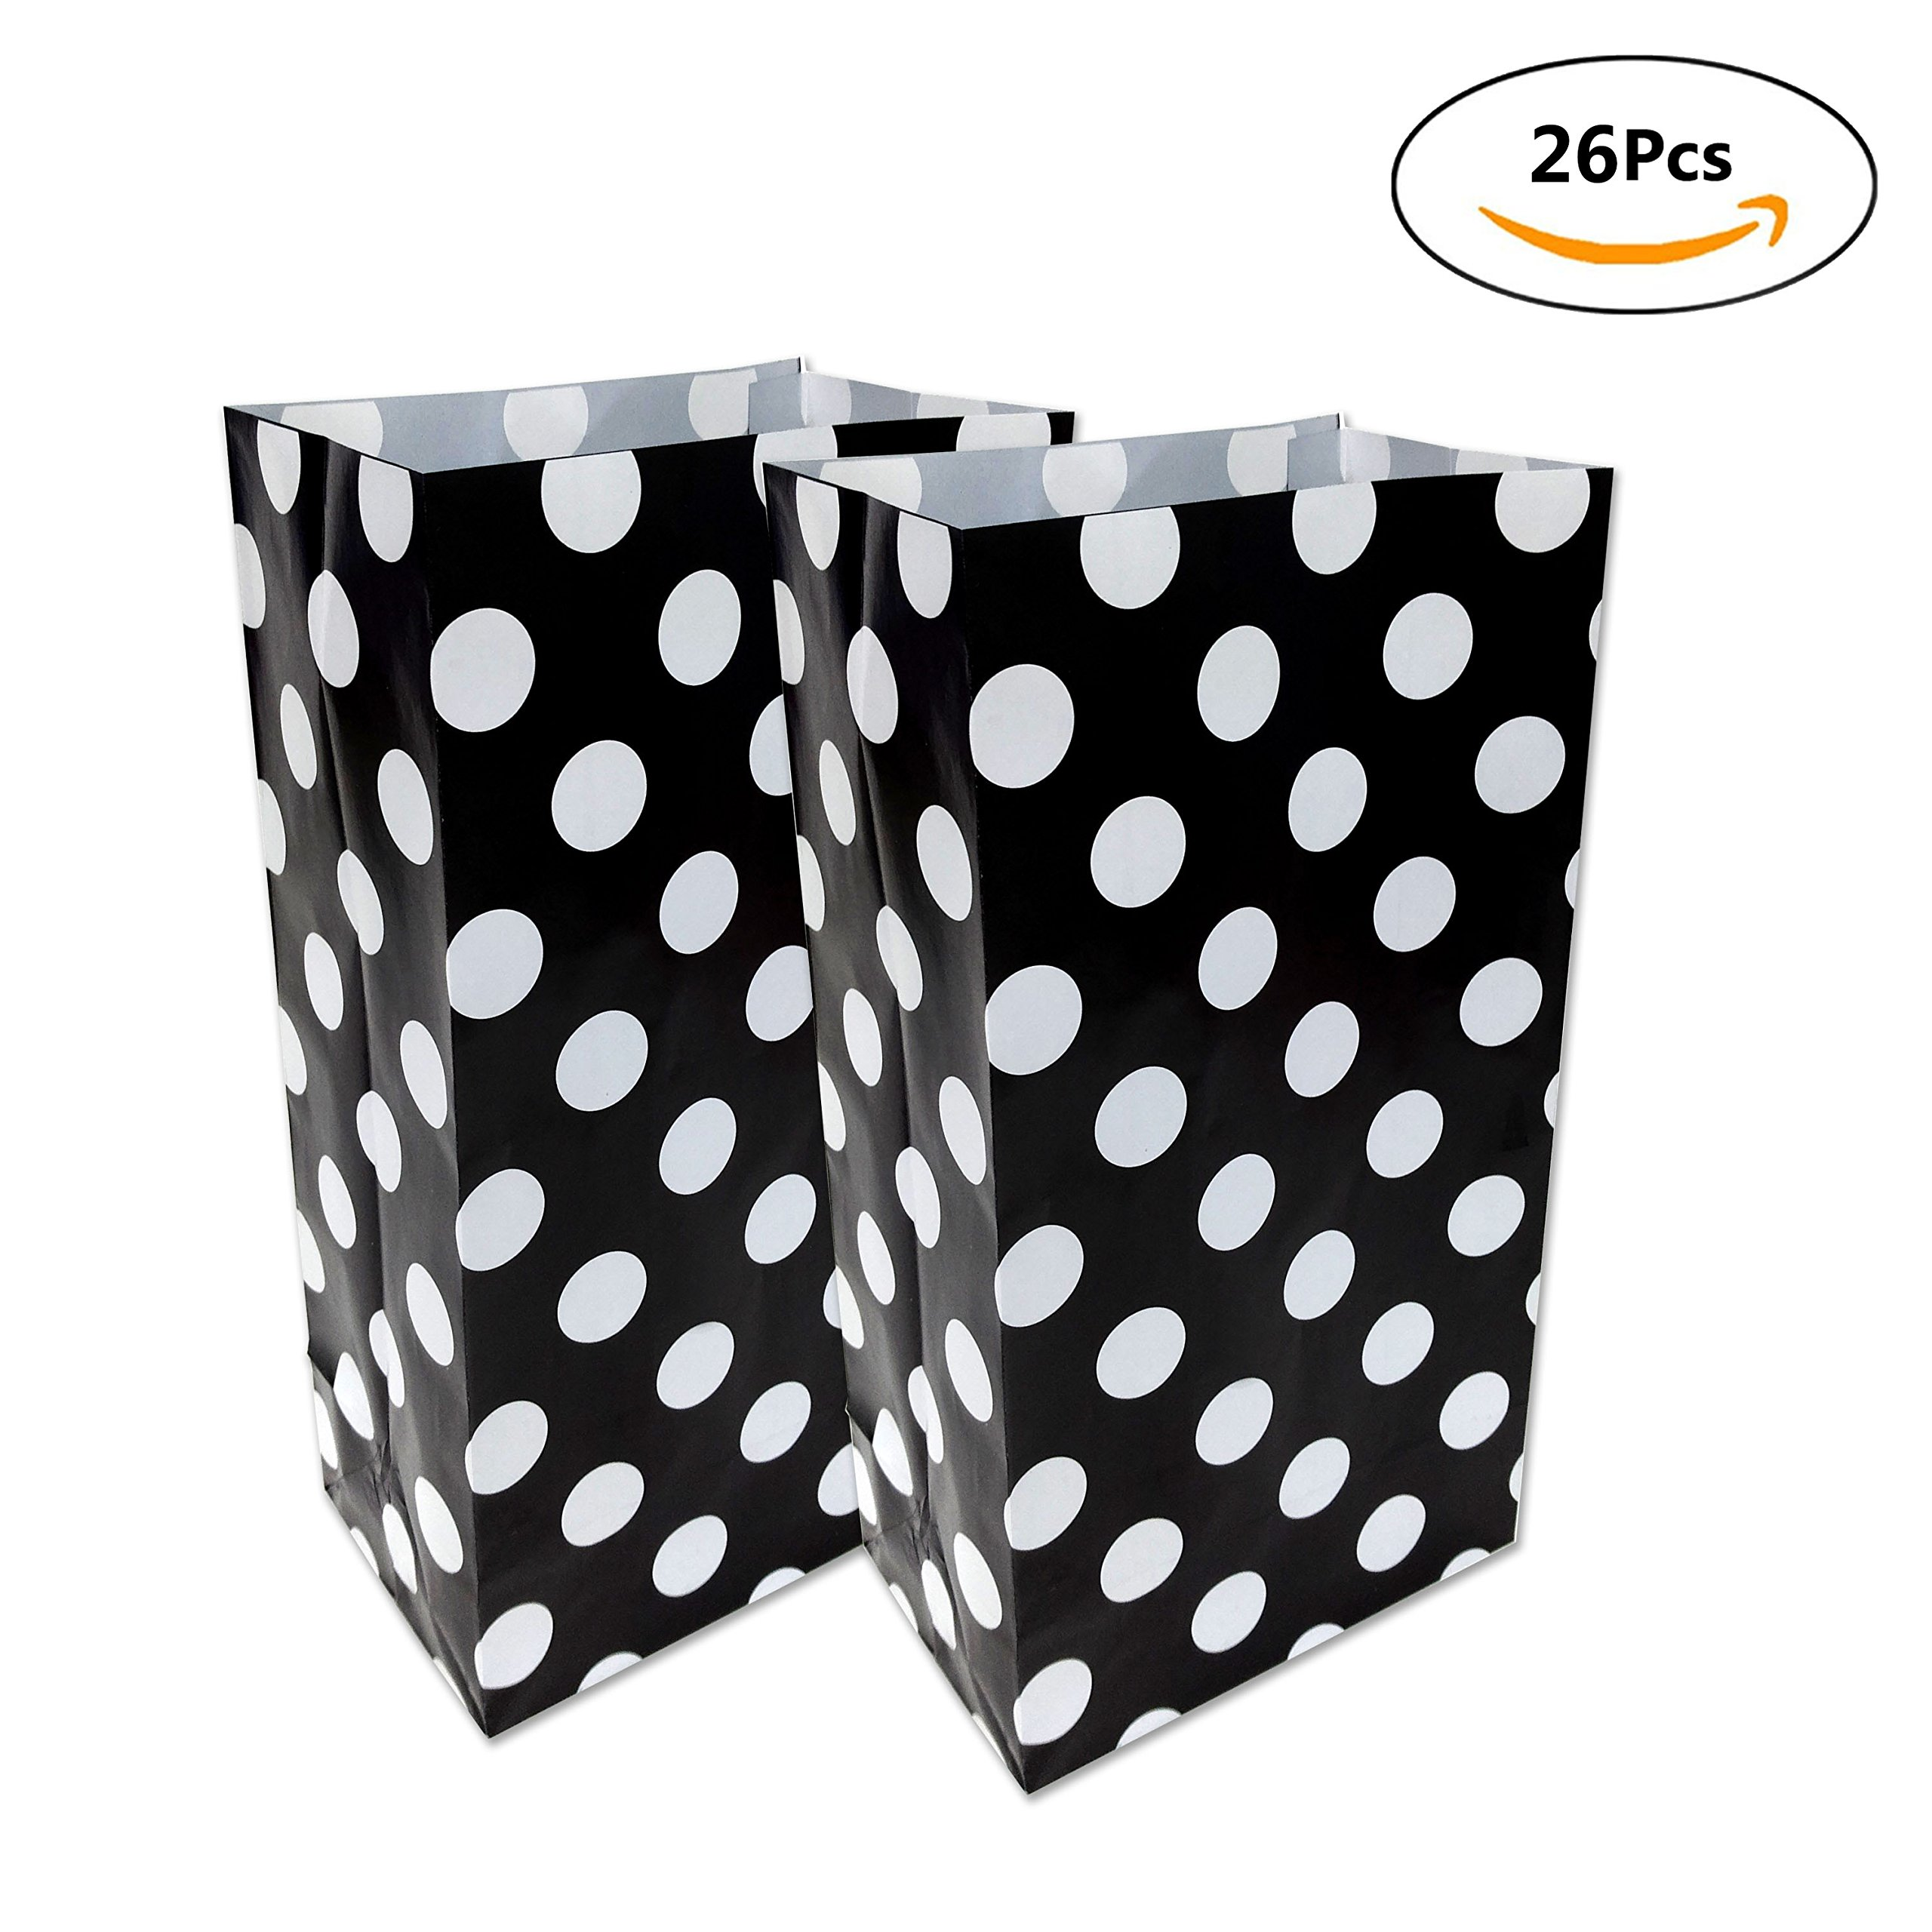 Paper Bags for Kids - 26 Pack Black/White Dot Style Party Bags for Birthday Party Goodies, Classroom Party Treat, Paper Treat Bags, 10 x 5.25 x 3.25 inches by WEEPA